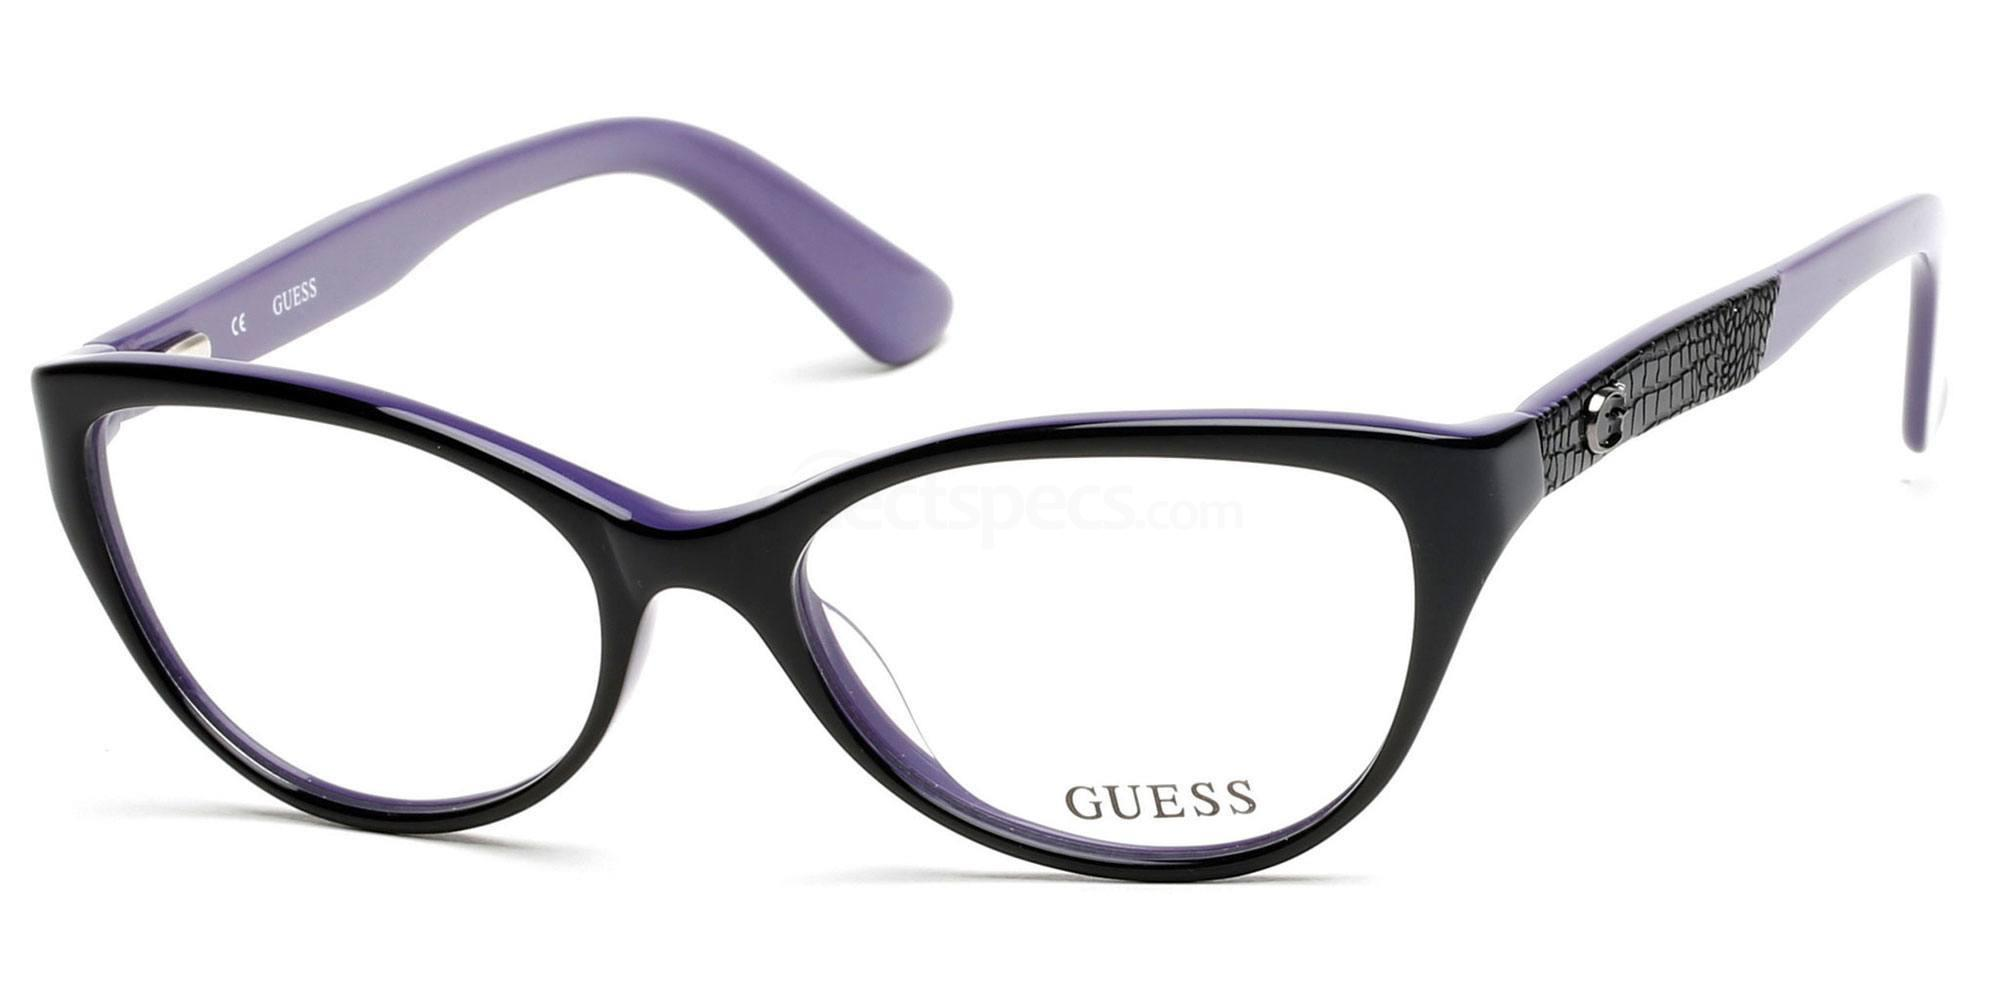 001 GU2509 Glasses, Guess